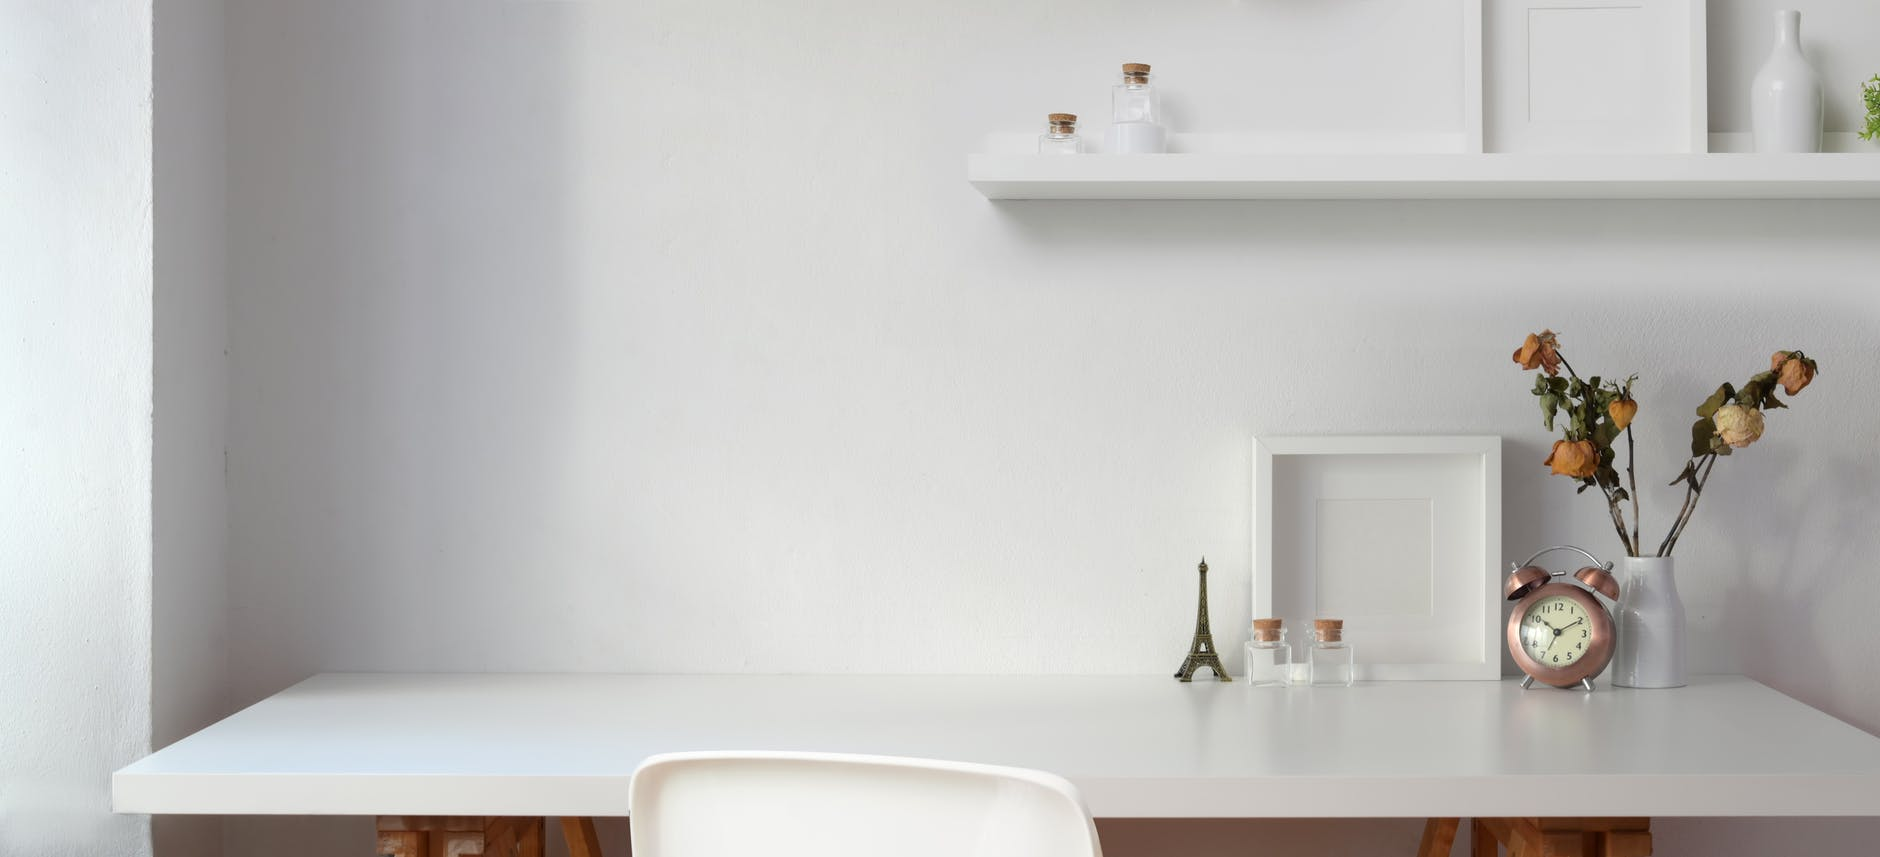 white table near wall